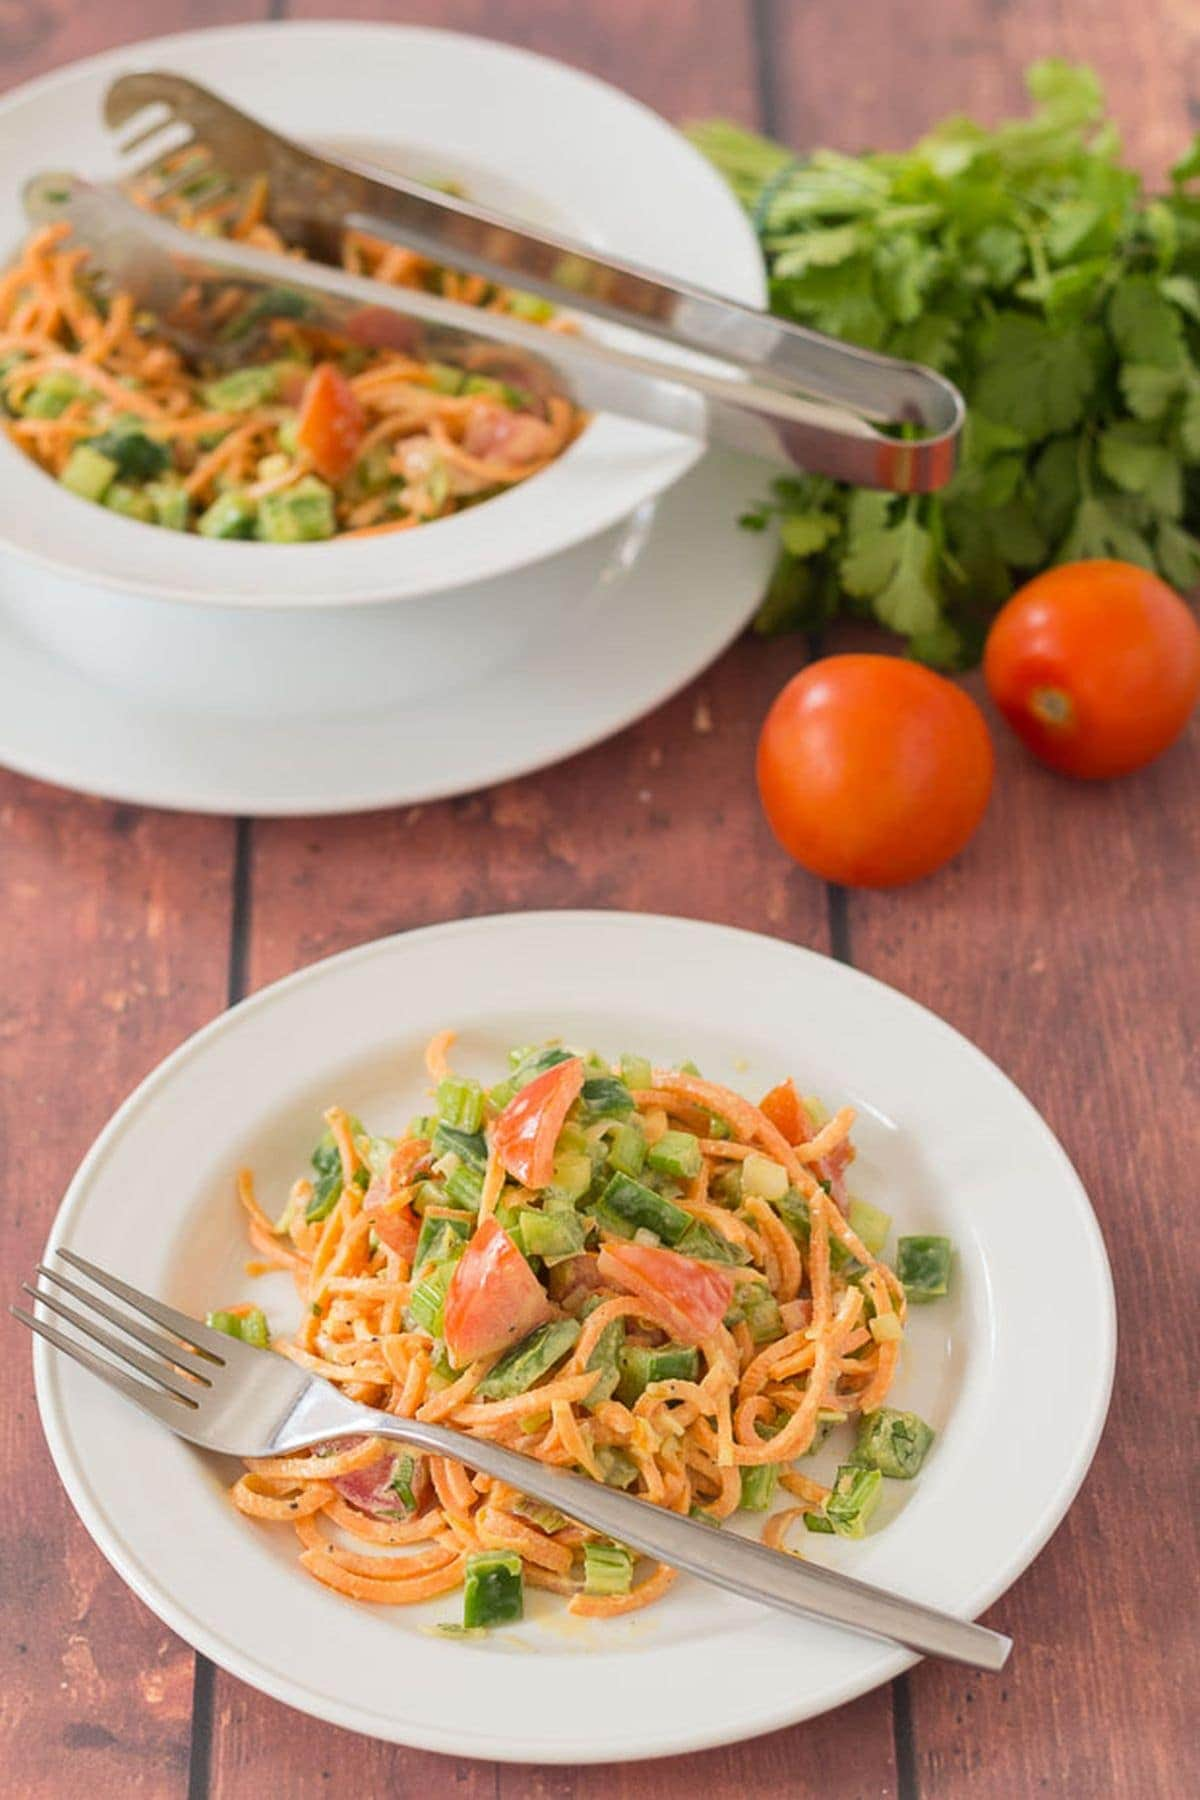 A plate of spiralized sweet potato salad with the serving bowl in the background. Tomatoes and lettuce in between as decoration.